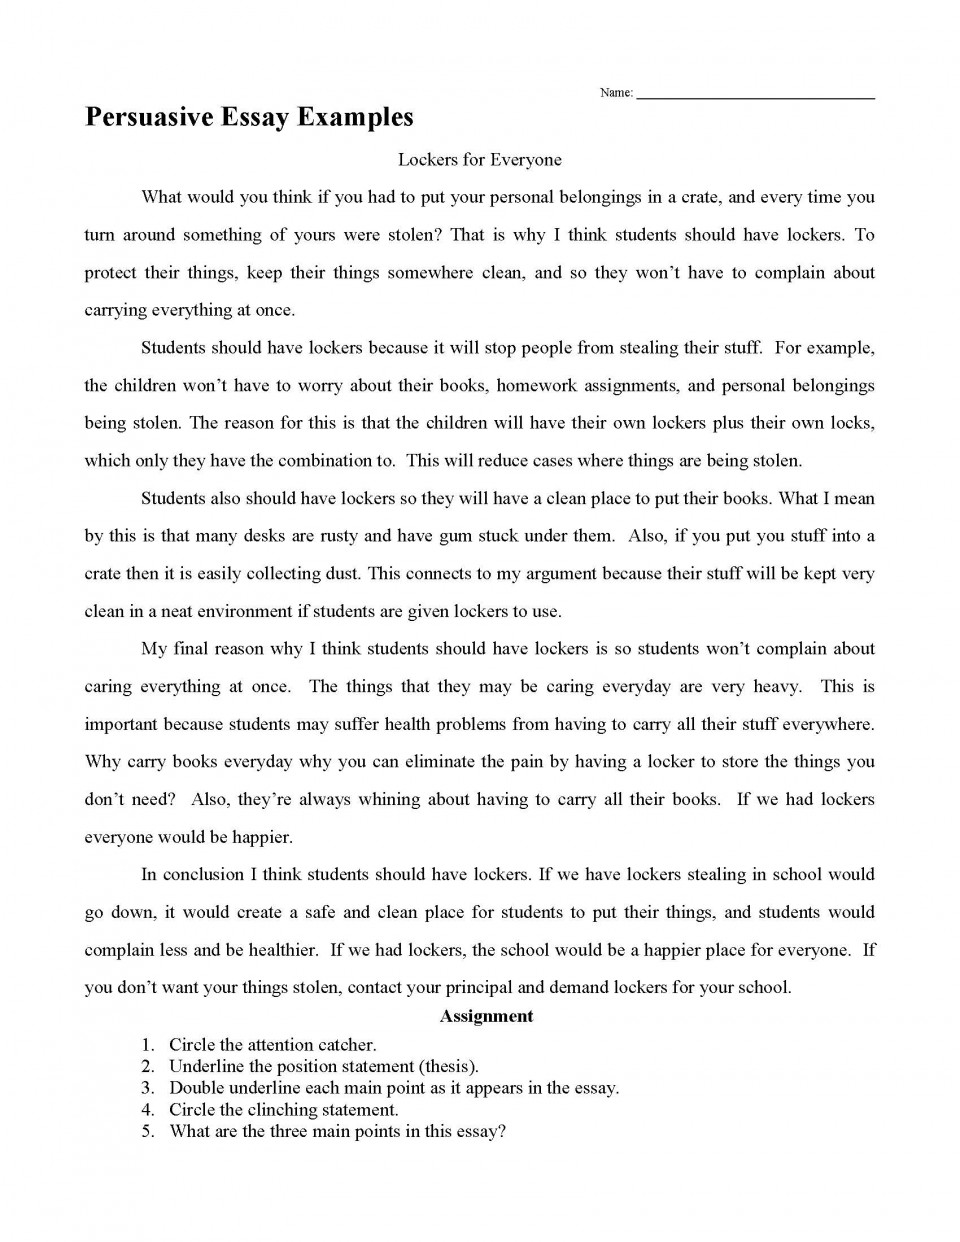 001 Persuasive Essays Impressive Essay Examples For Middle School Good Topics 4th Grade 5th 960